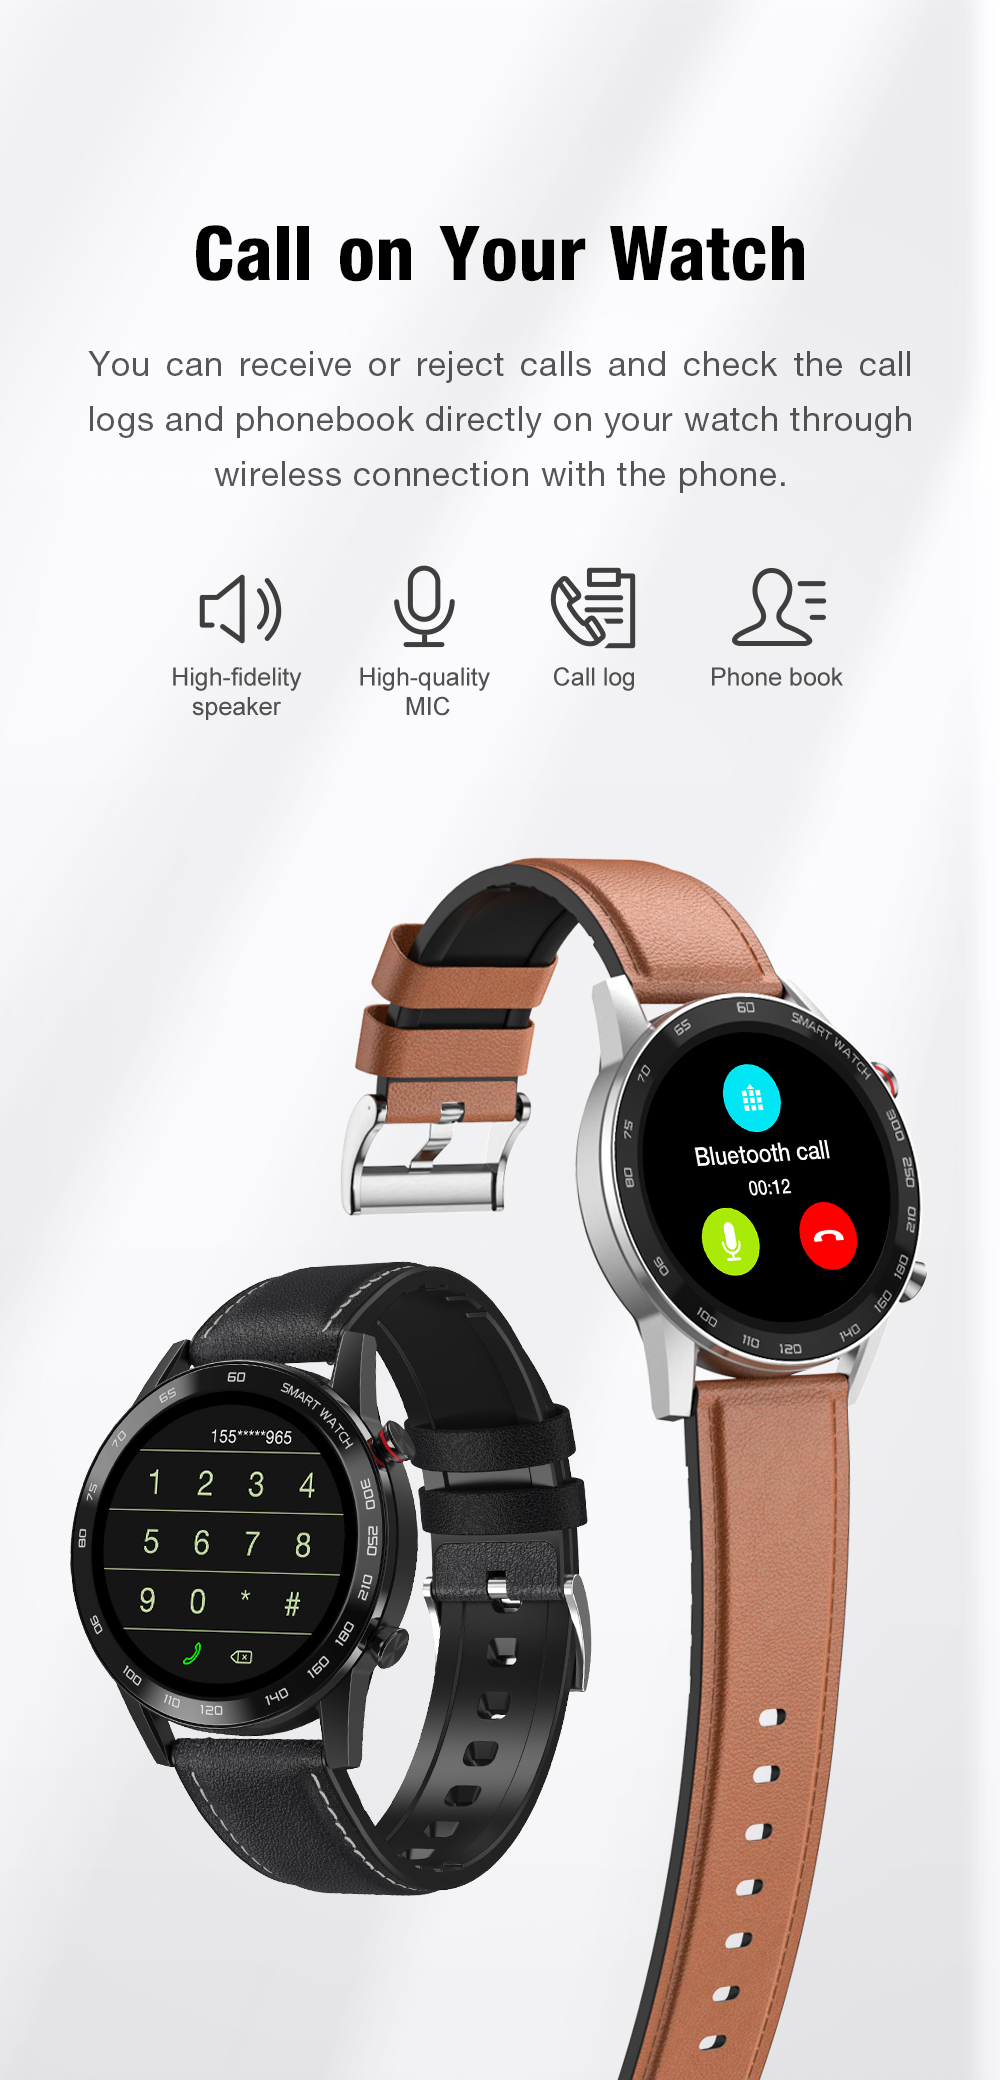 Ha62c7a976f014b29bd954a583d24422fB 2021 SANLEPUS ECG Smart Watch Dial Call Smartwatch Men Sport Fitness Bracelet Clock Watches For Android Apple Xiaomi